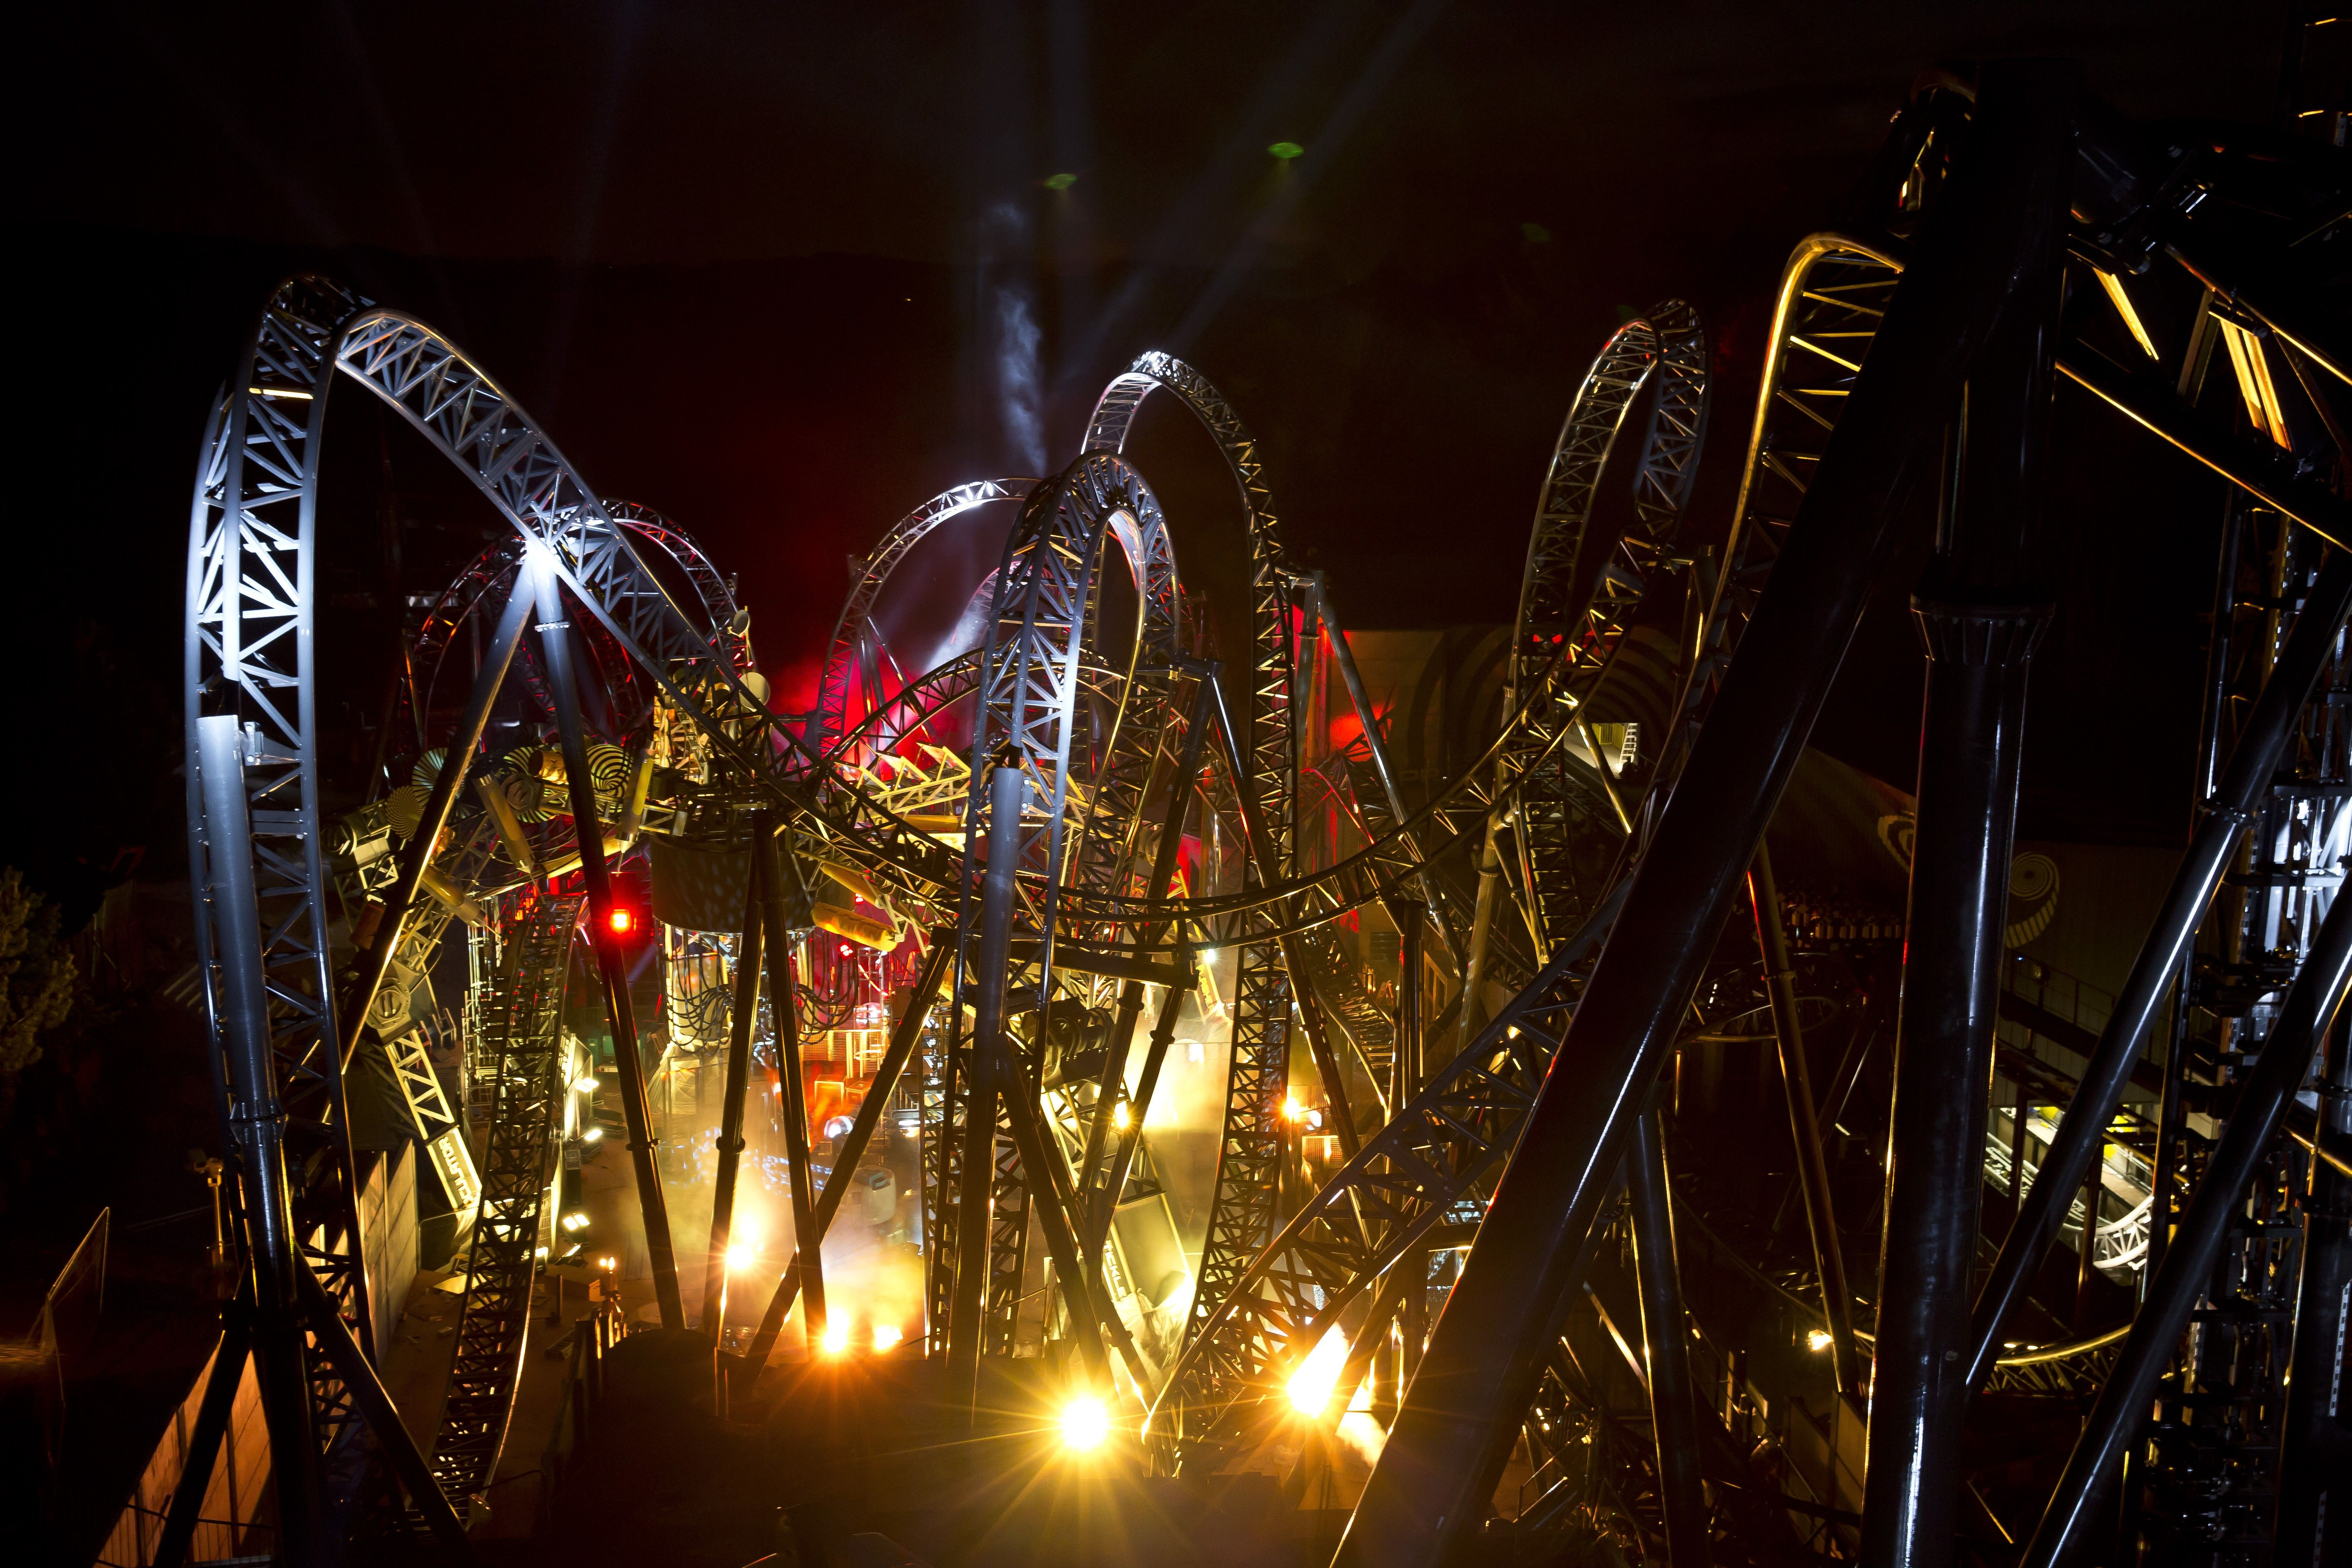 Pin by Daniel Le Roy on Theme Parks - Roller Coasters | Pinterest ...